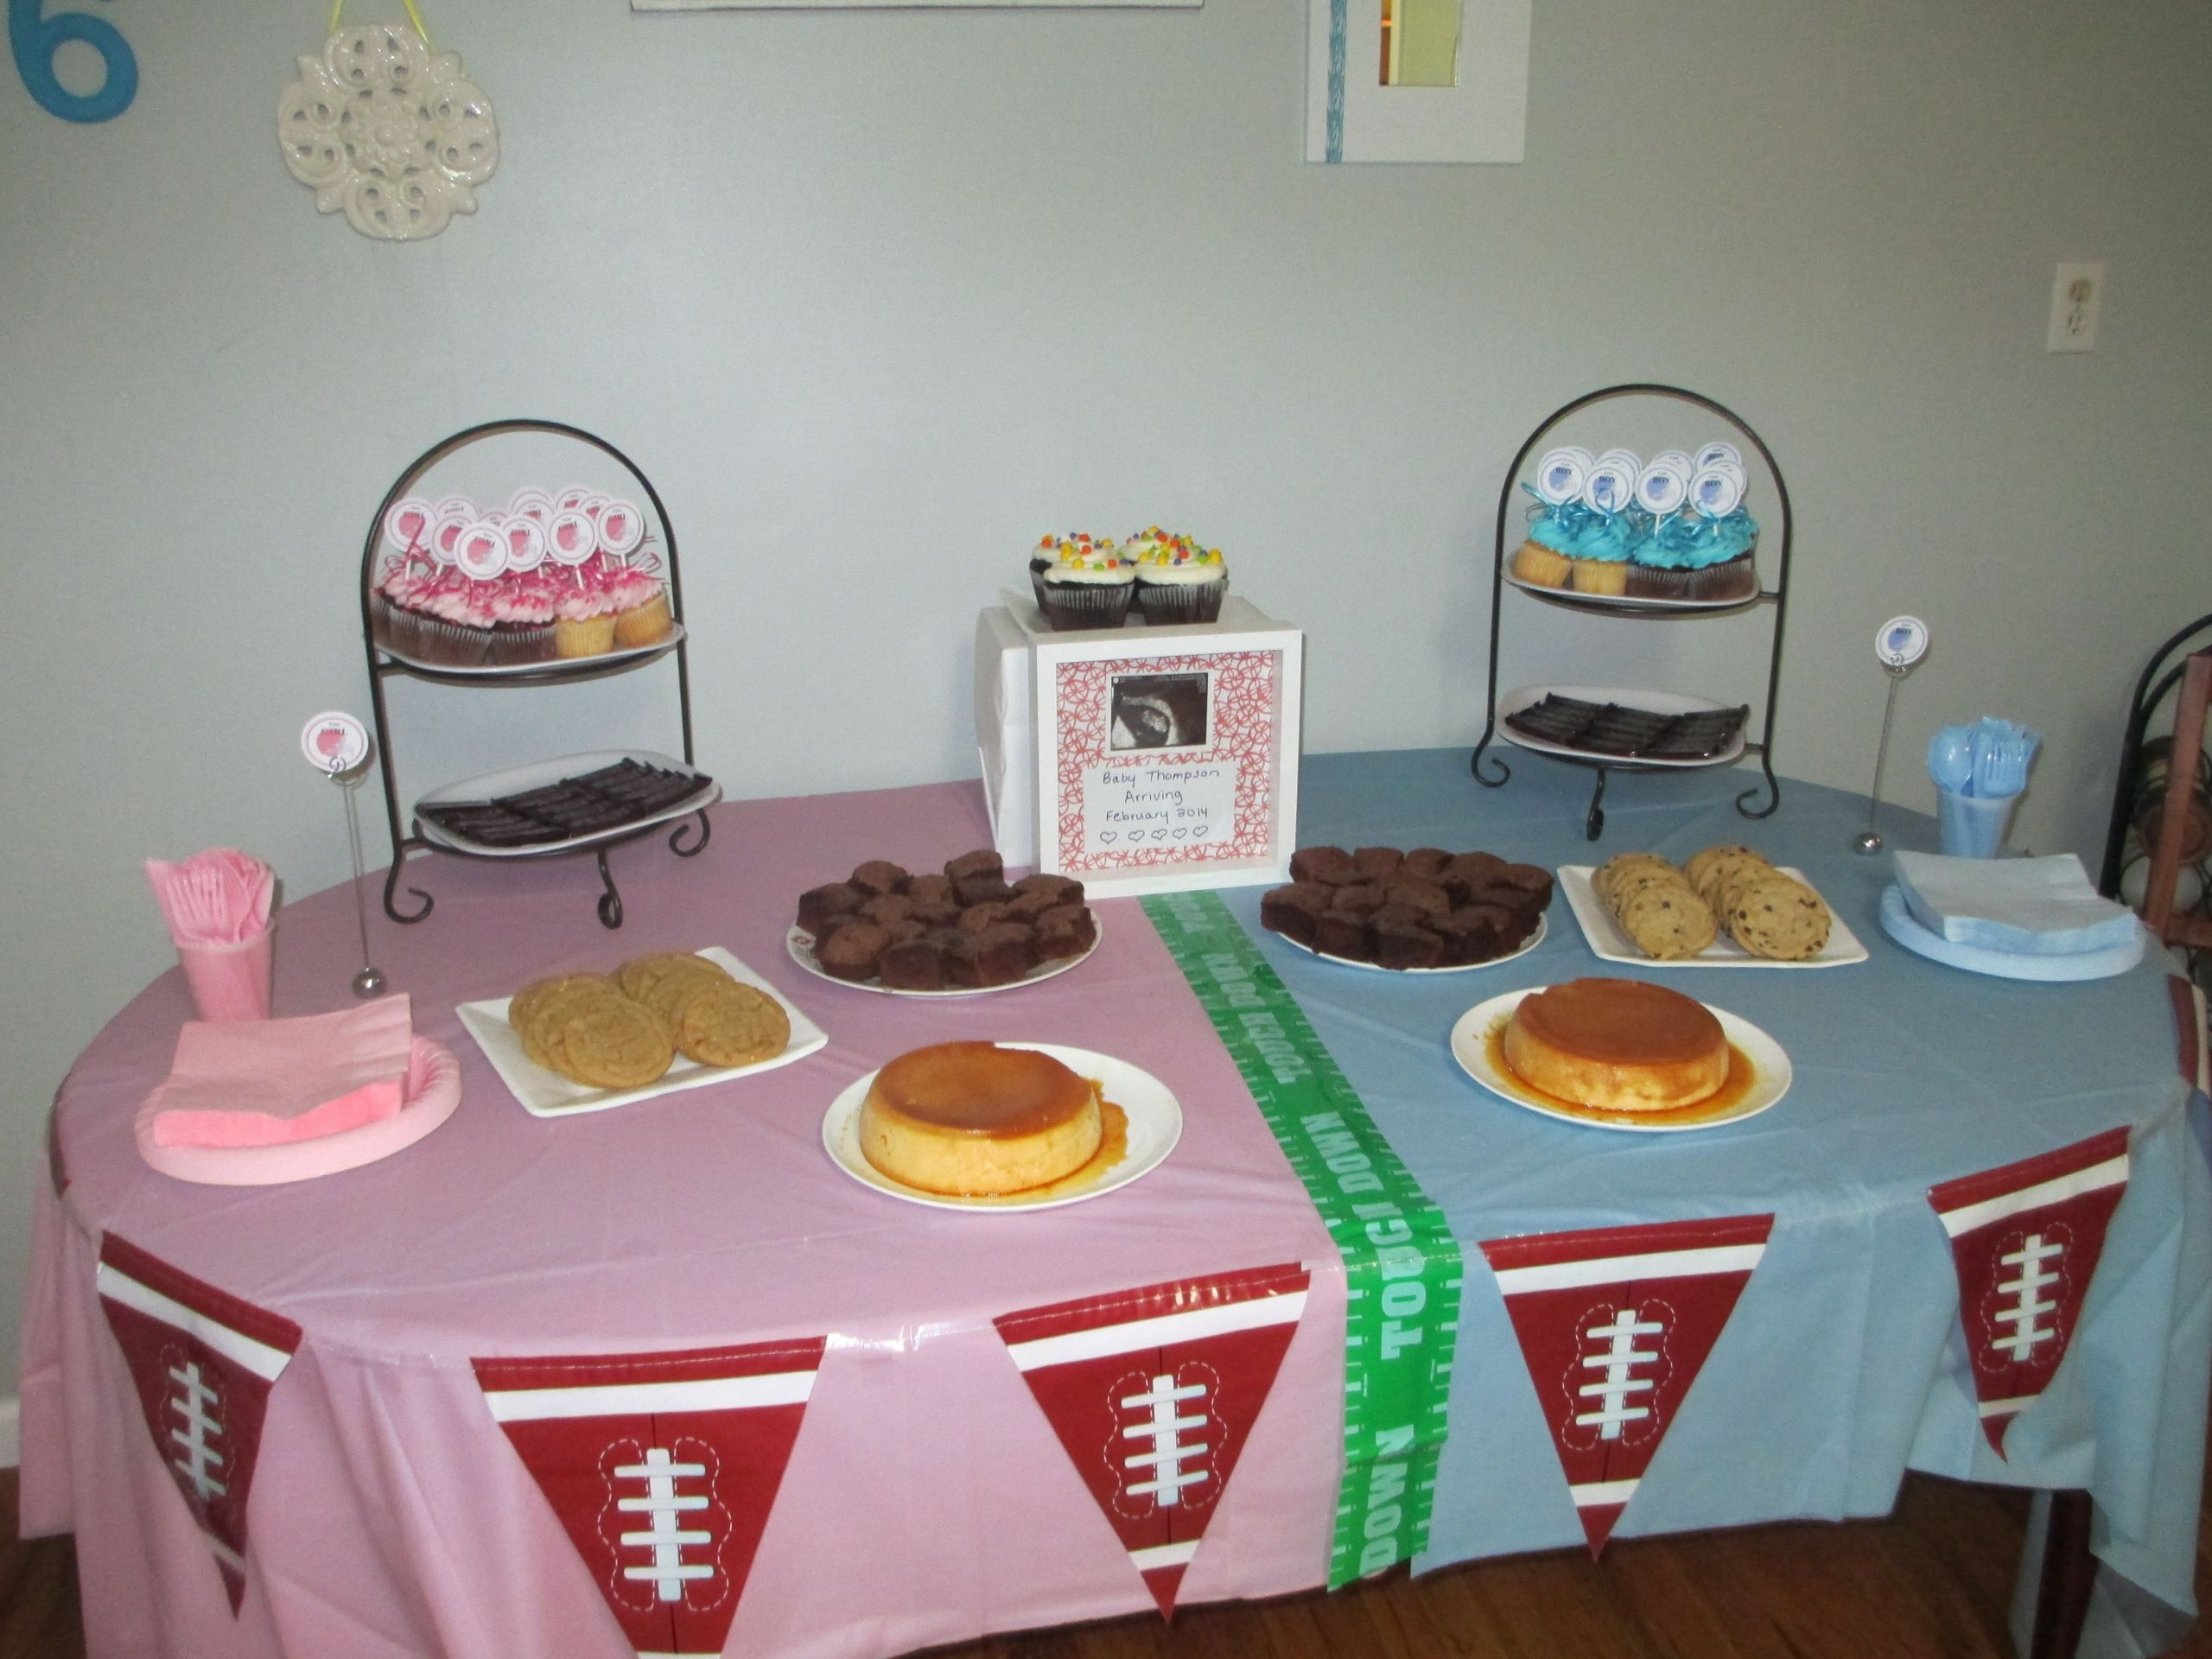 Football Themed Gender Reveal Party Ideas  Football themed Gender Reveal Pink VS Blue